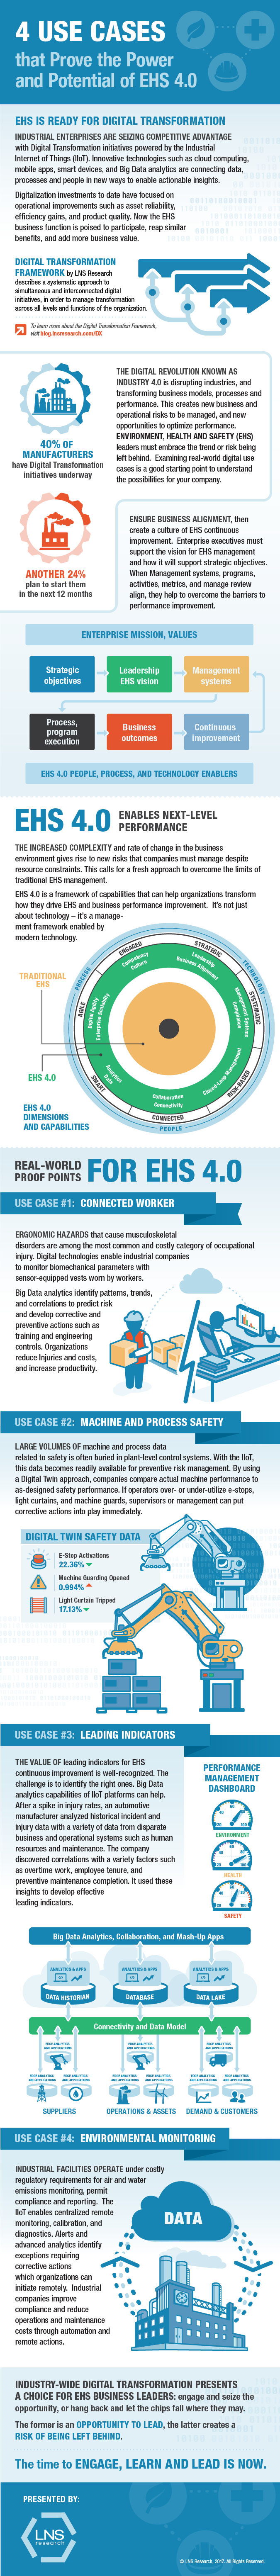 4 Use Cases That Prove the Power and Potential of EHS 4.0